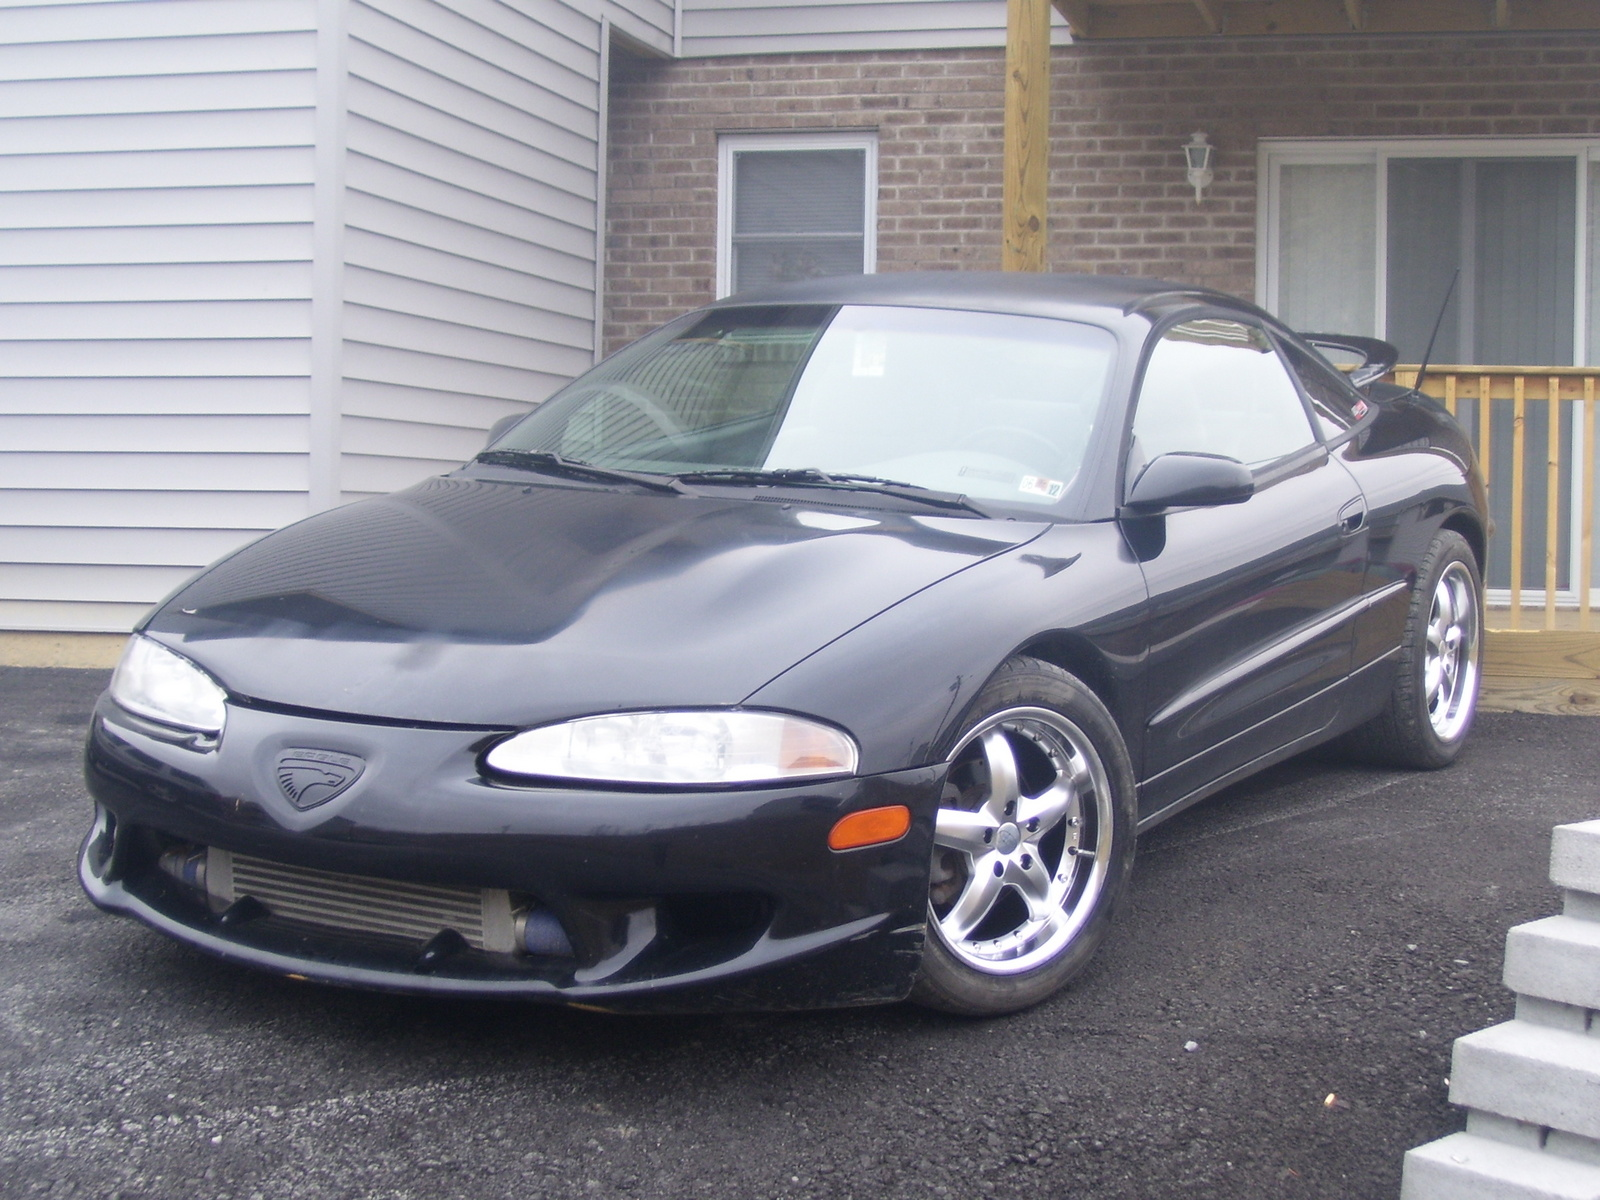 Eagle talon 1997 4 eagle talon 1997 4